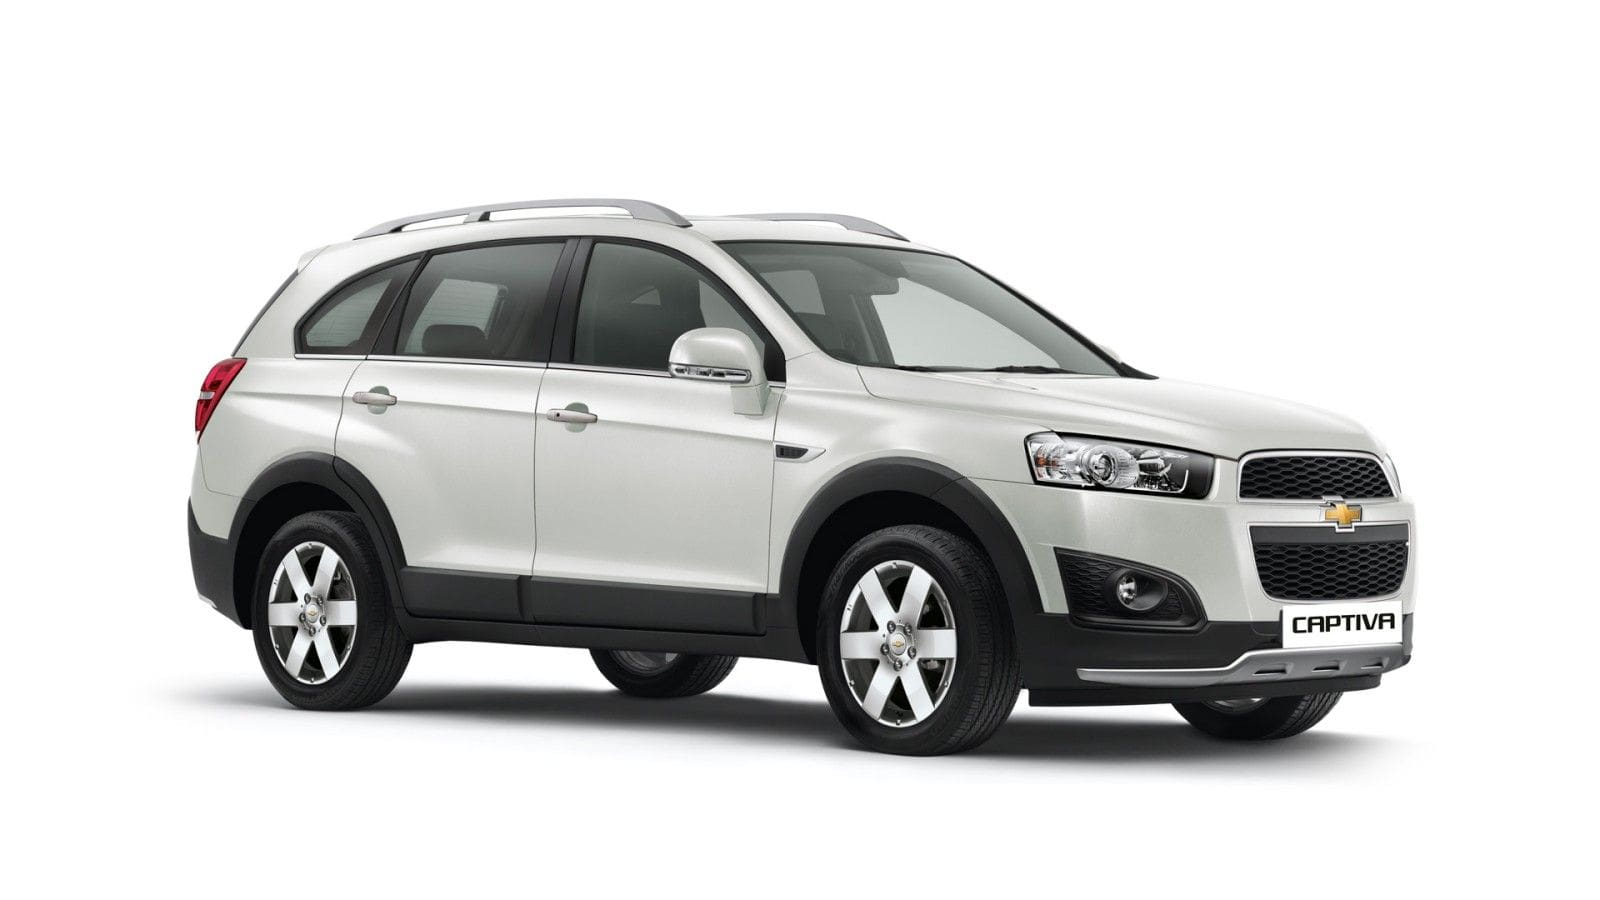 Chevrolet Captiva 2.2 LTZ AWD On Road Price (Diesel), Features & Specs, Images